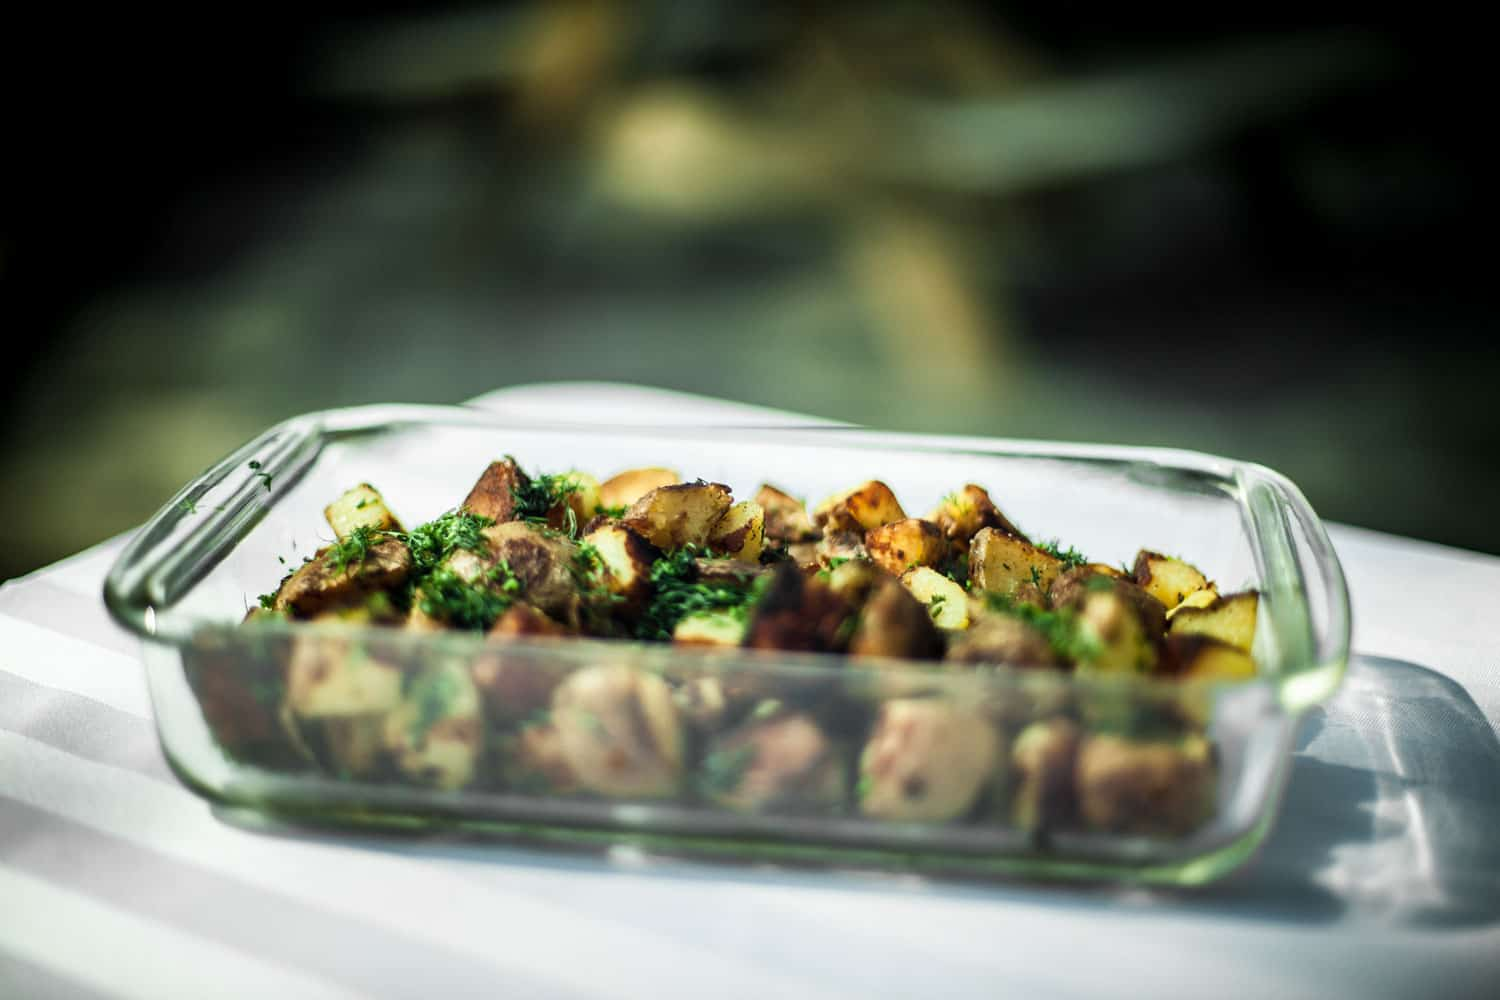 A delicious American cuisine on a pyrex glass casserole placed on a table outside to cool, Can Pyrex Go In The Oven?